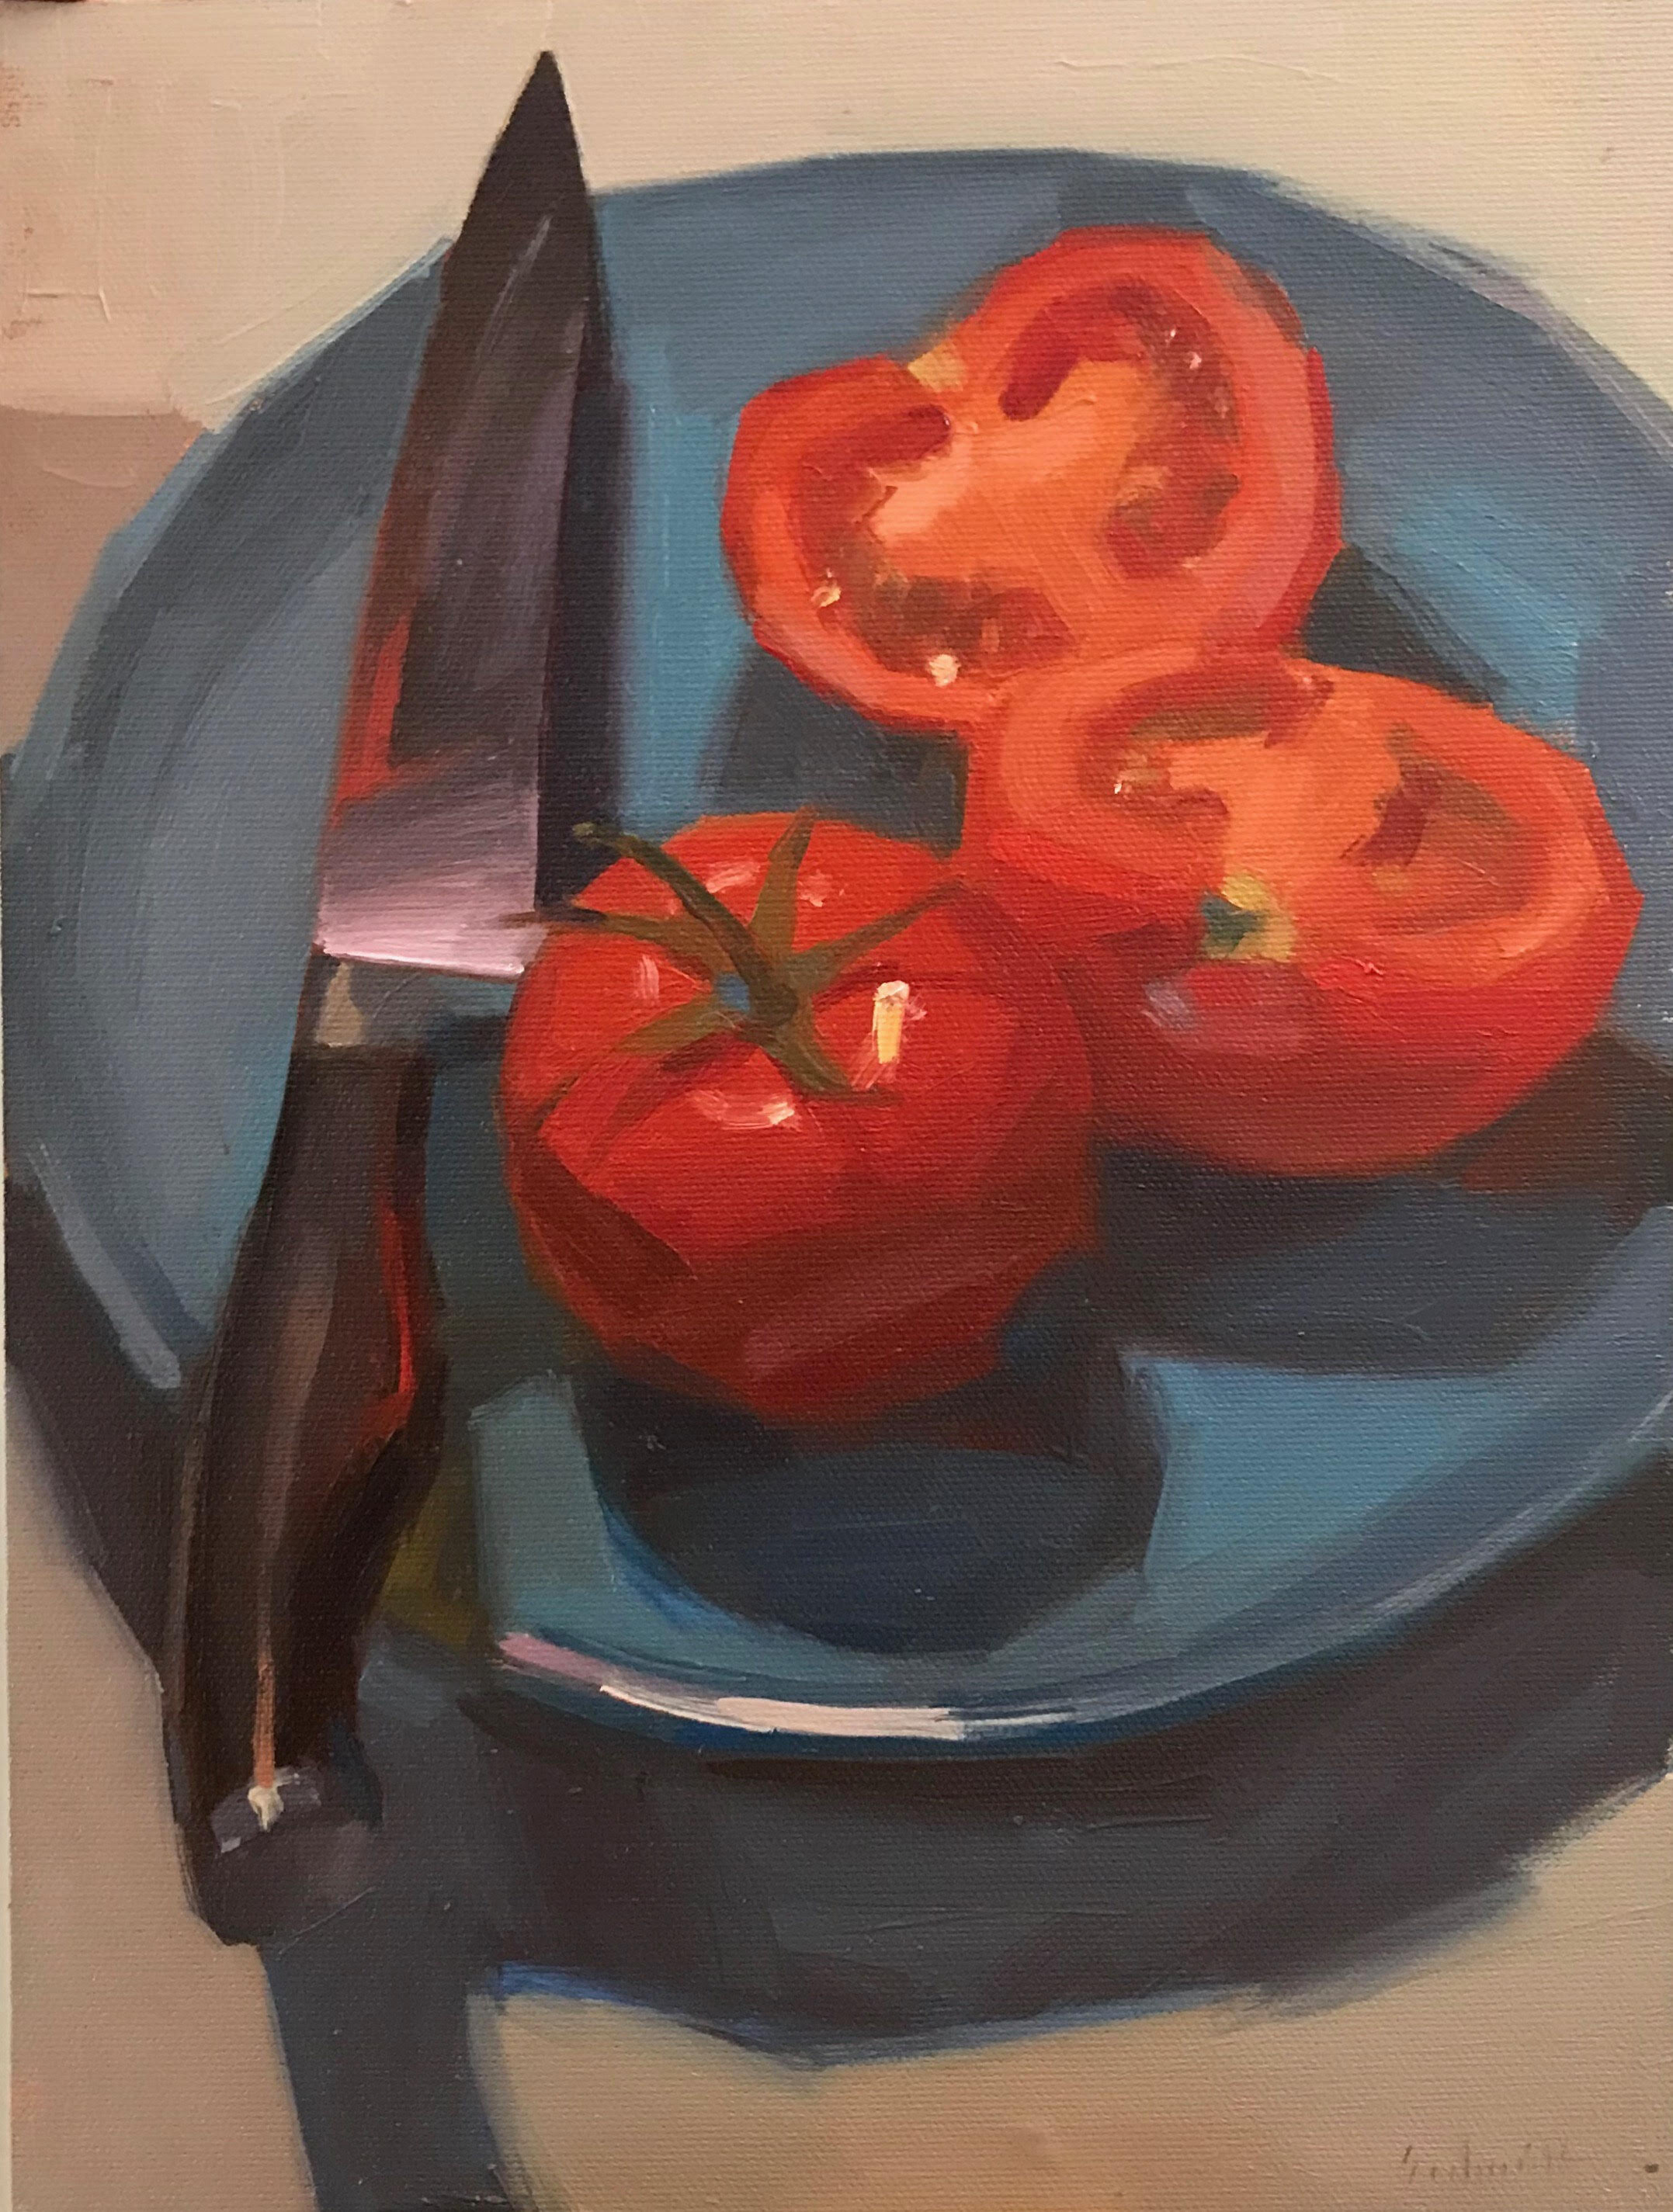 Oil Painting Boot Camp with Sarah sedwick - Date: Friday, September 18, through Sunday, September 20, 2020Time: 9:30 am - 4:30 pm